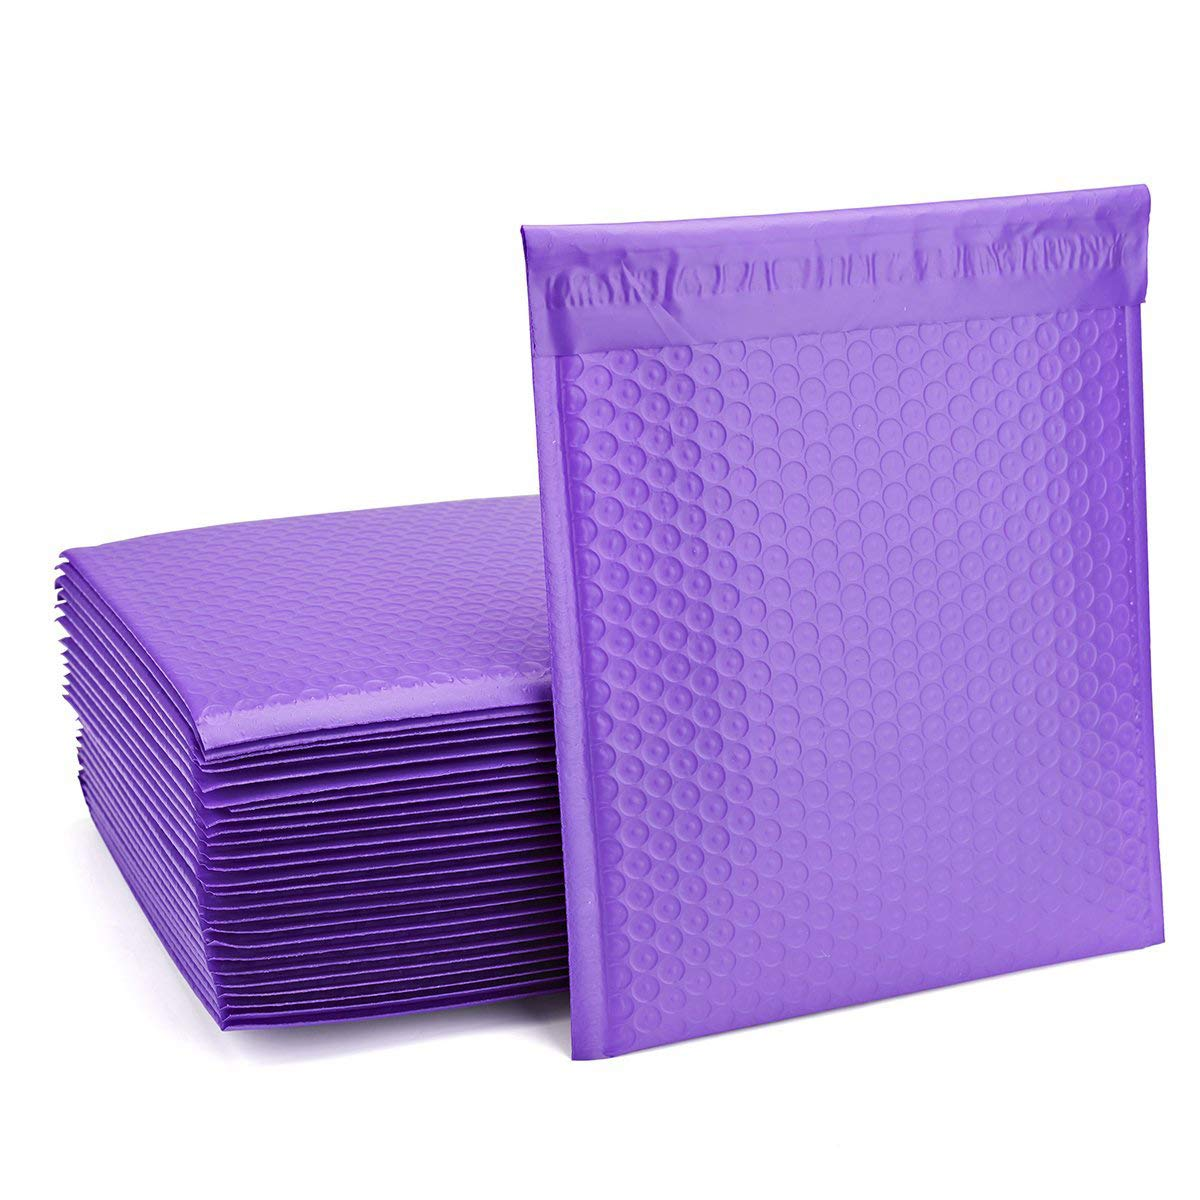 FU Global Purple Bubble Mailers 8.5x12 Inch #2 Padded Envelopes Pack of 25 (Purple, 8.5x12)